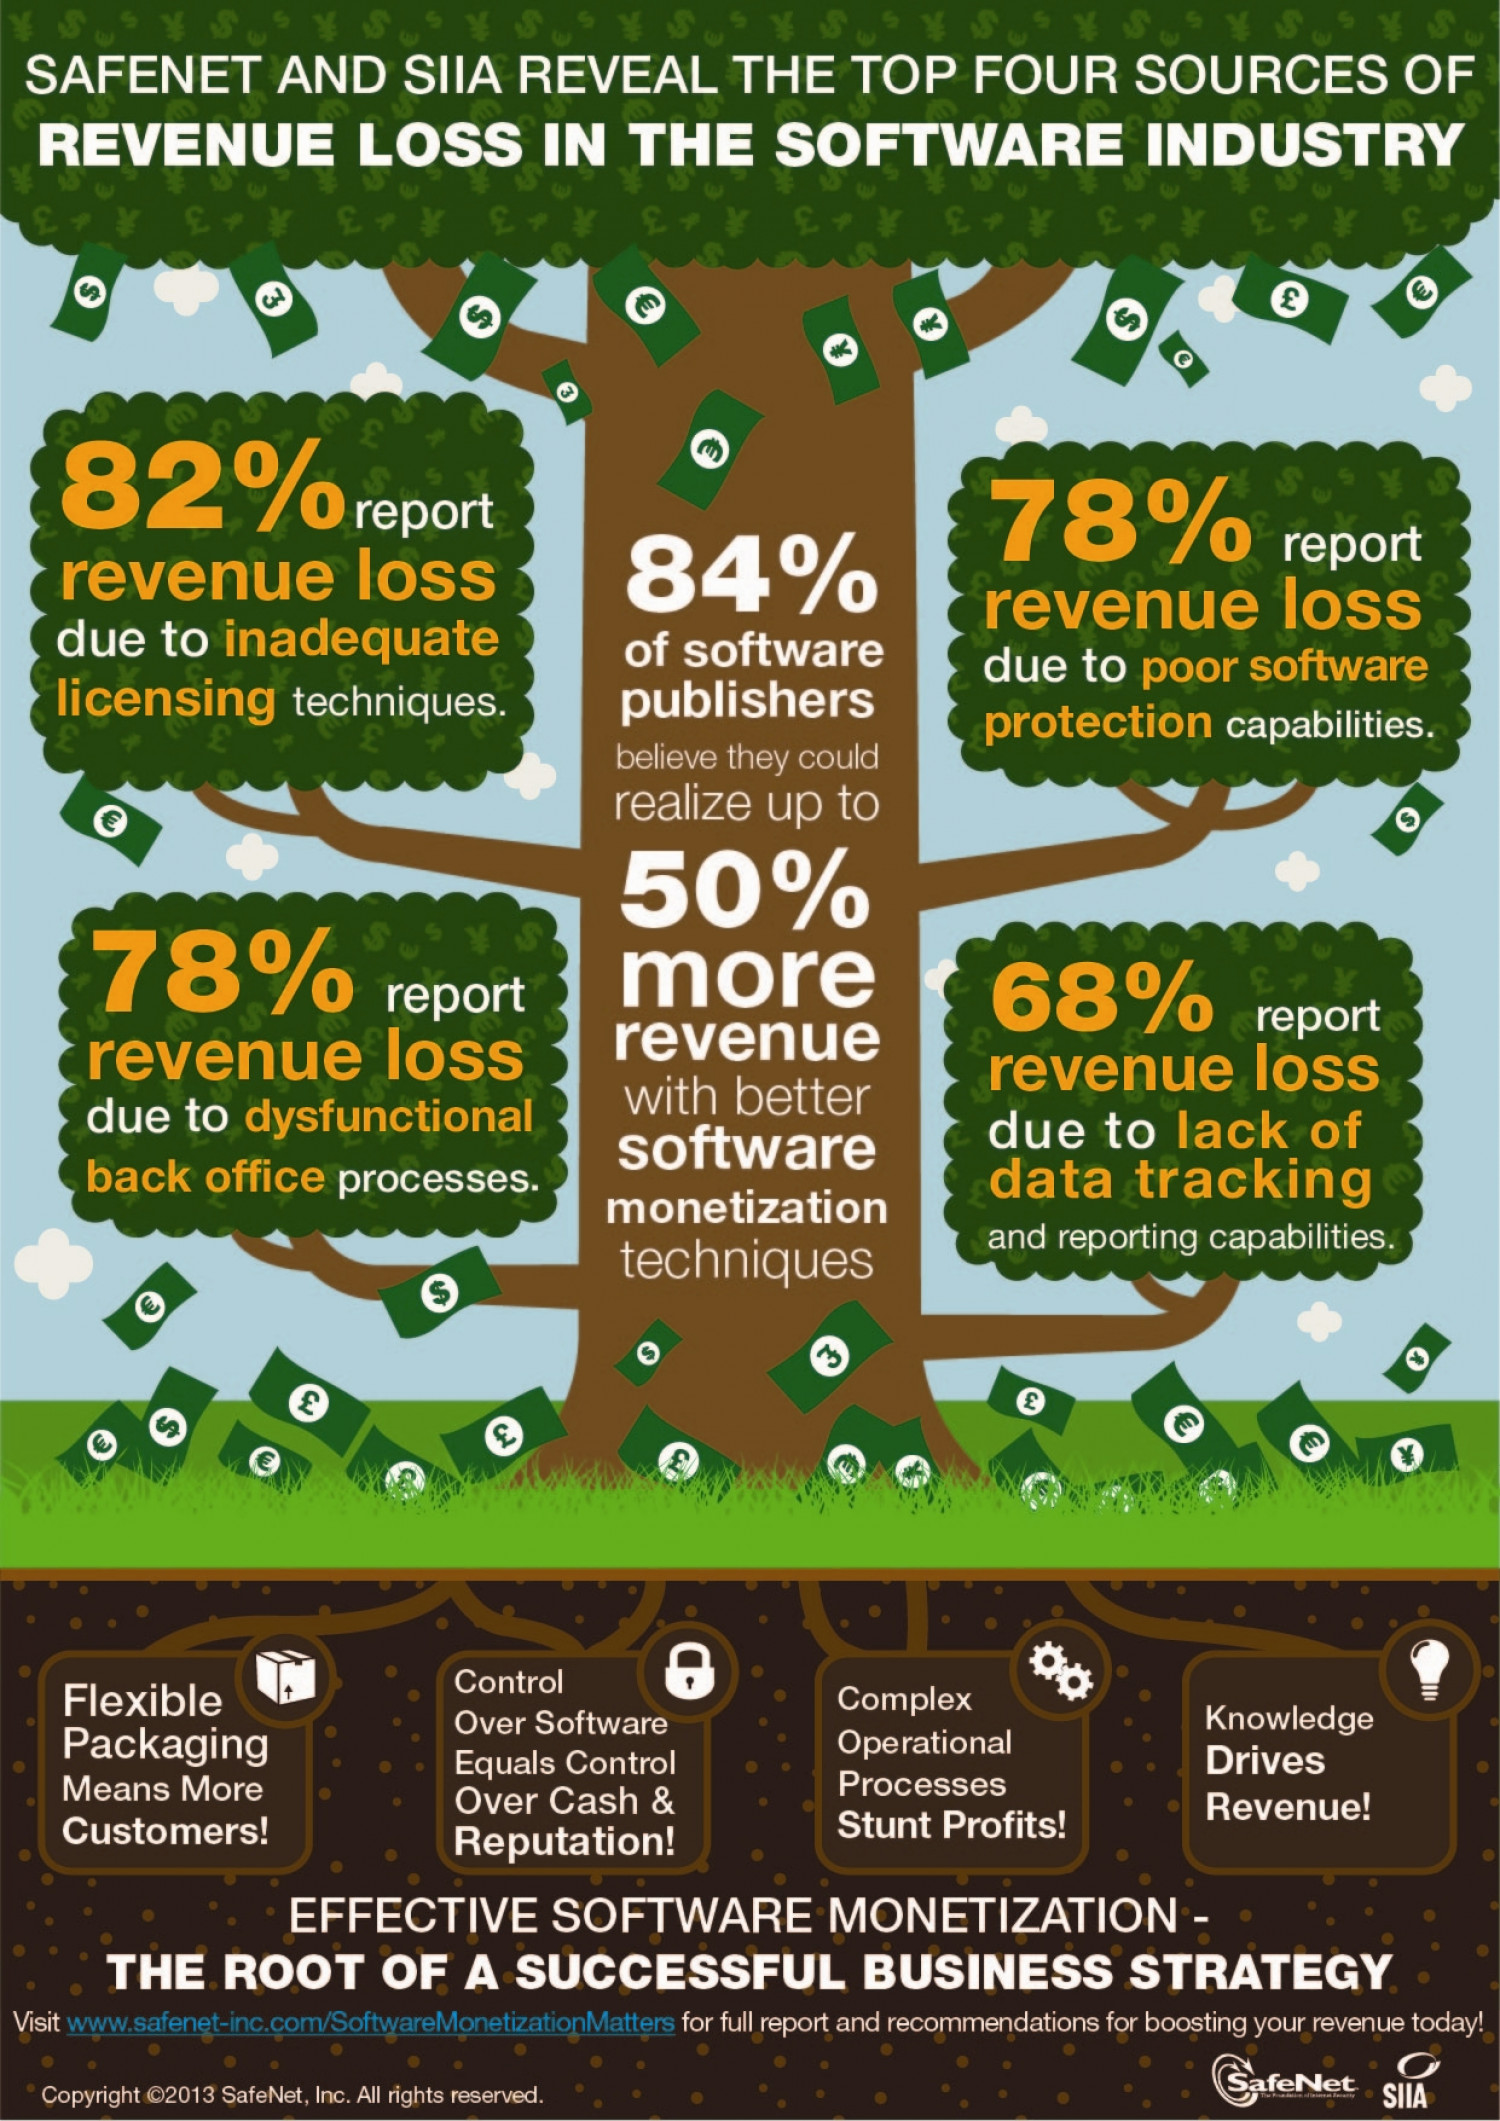 SafeNet and SIIA Software Monetization Survey Infographic Infographic